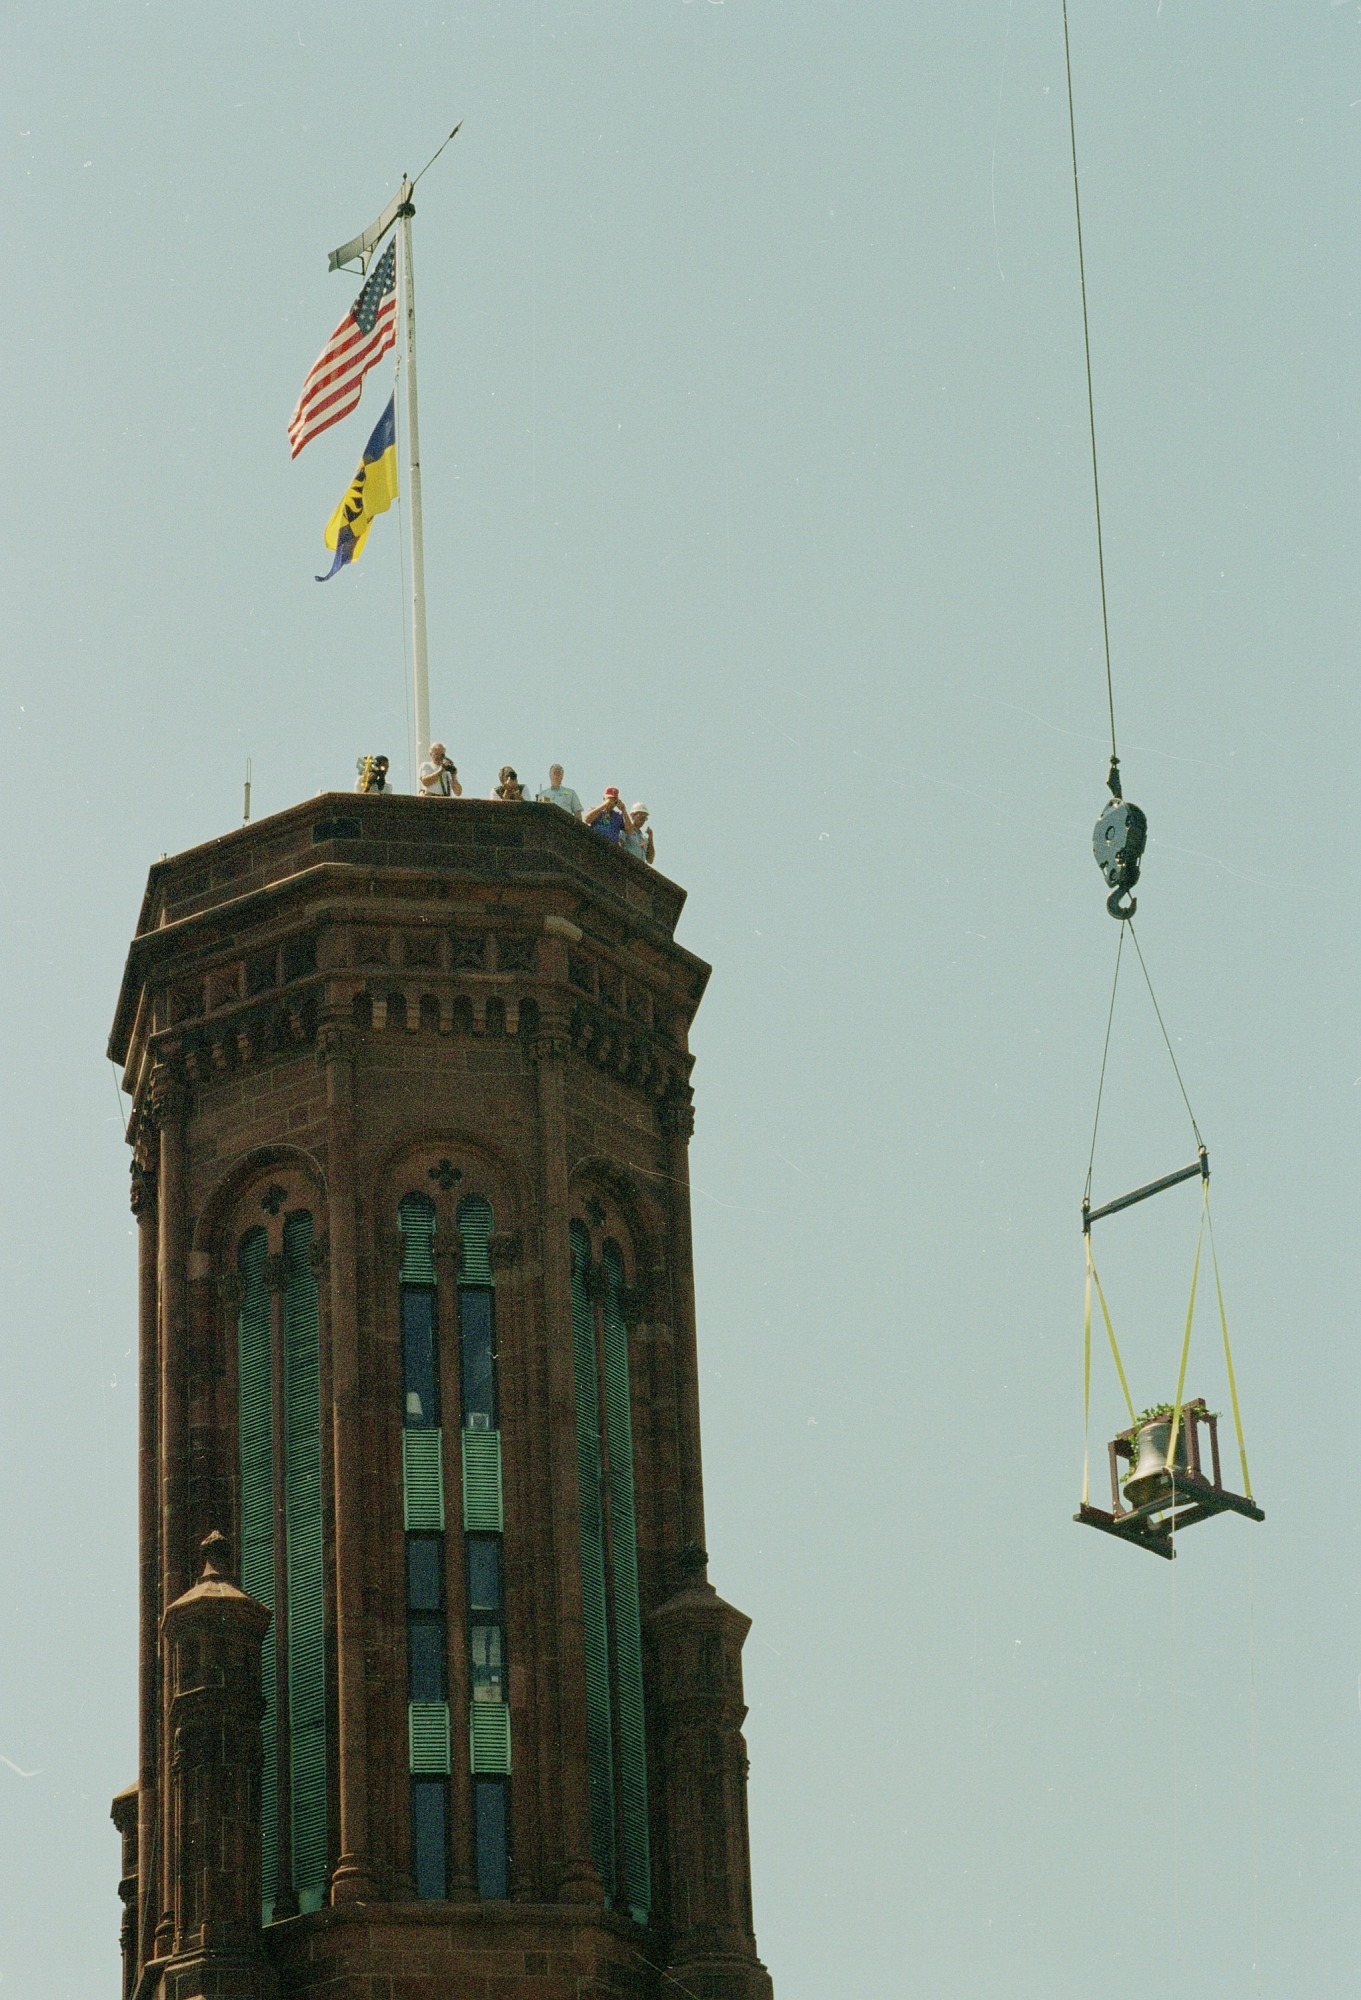 Hoisting the New Bell for the Flag Tower, Smithsonian Institution Building